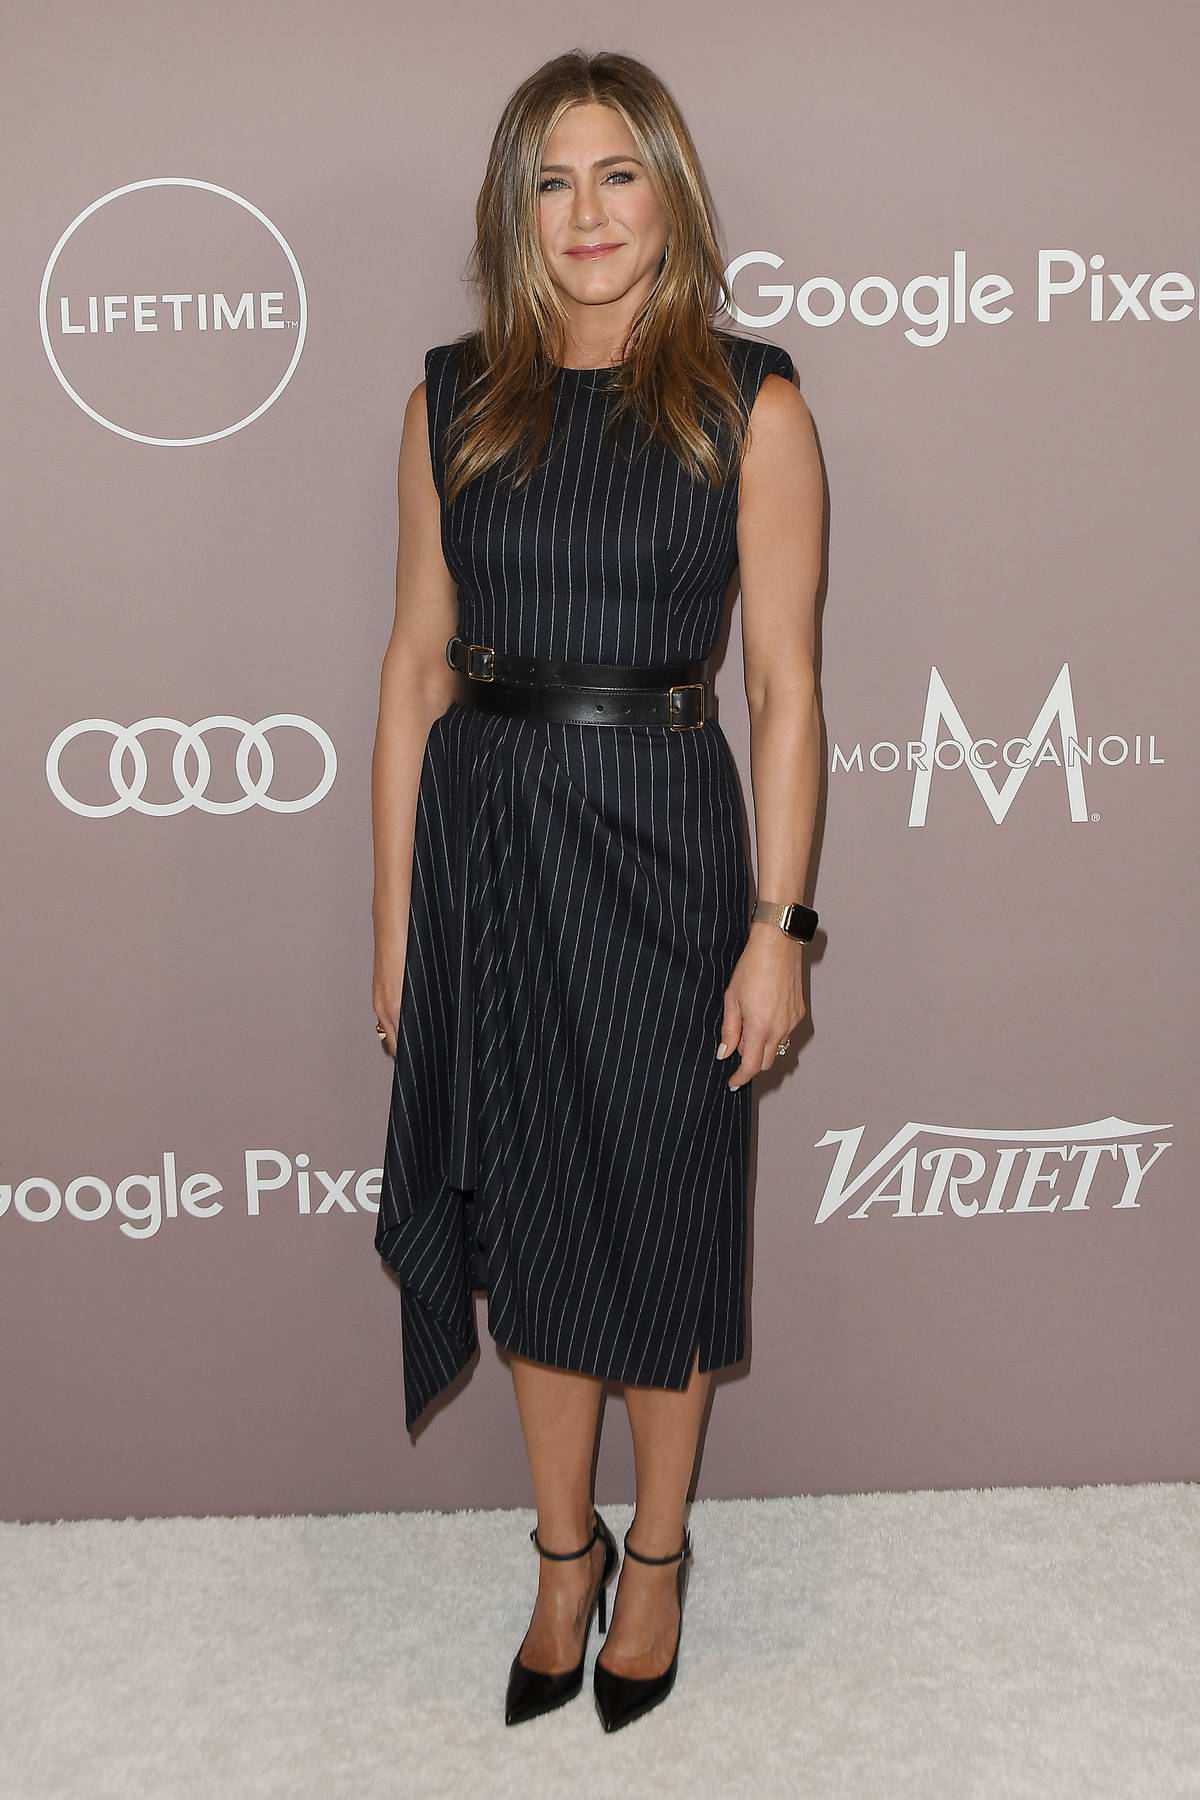 Jennifer Aniston attends the Variety's 2019 Power of Women Presented by Lifetime at The Beverly Wilshire in Los Angeles